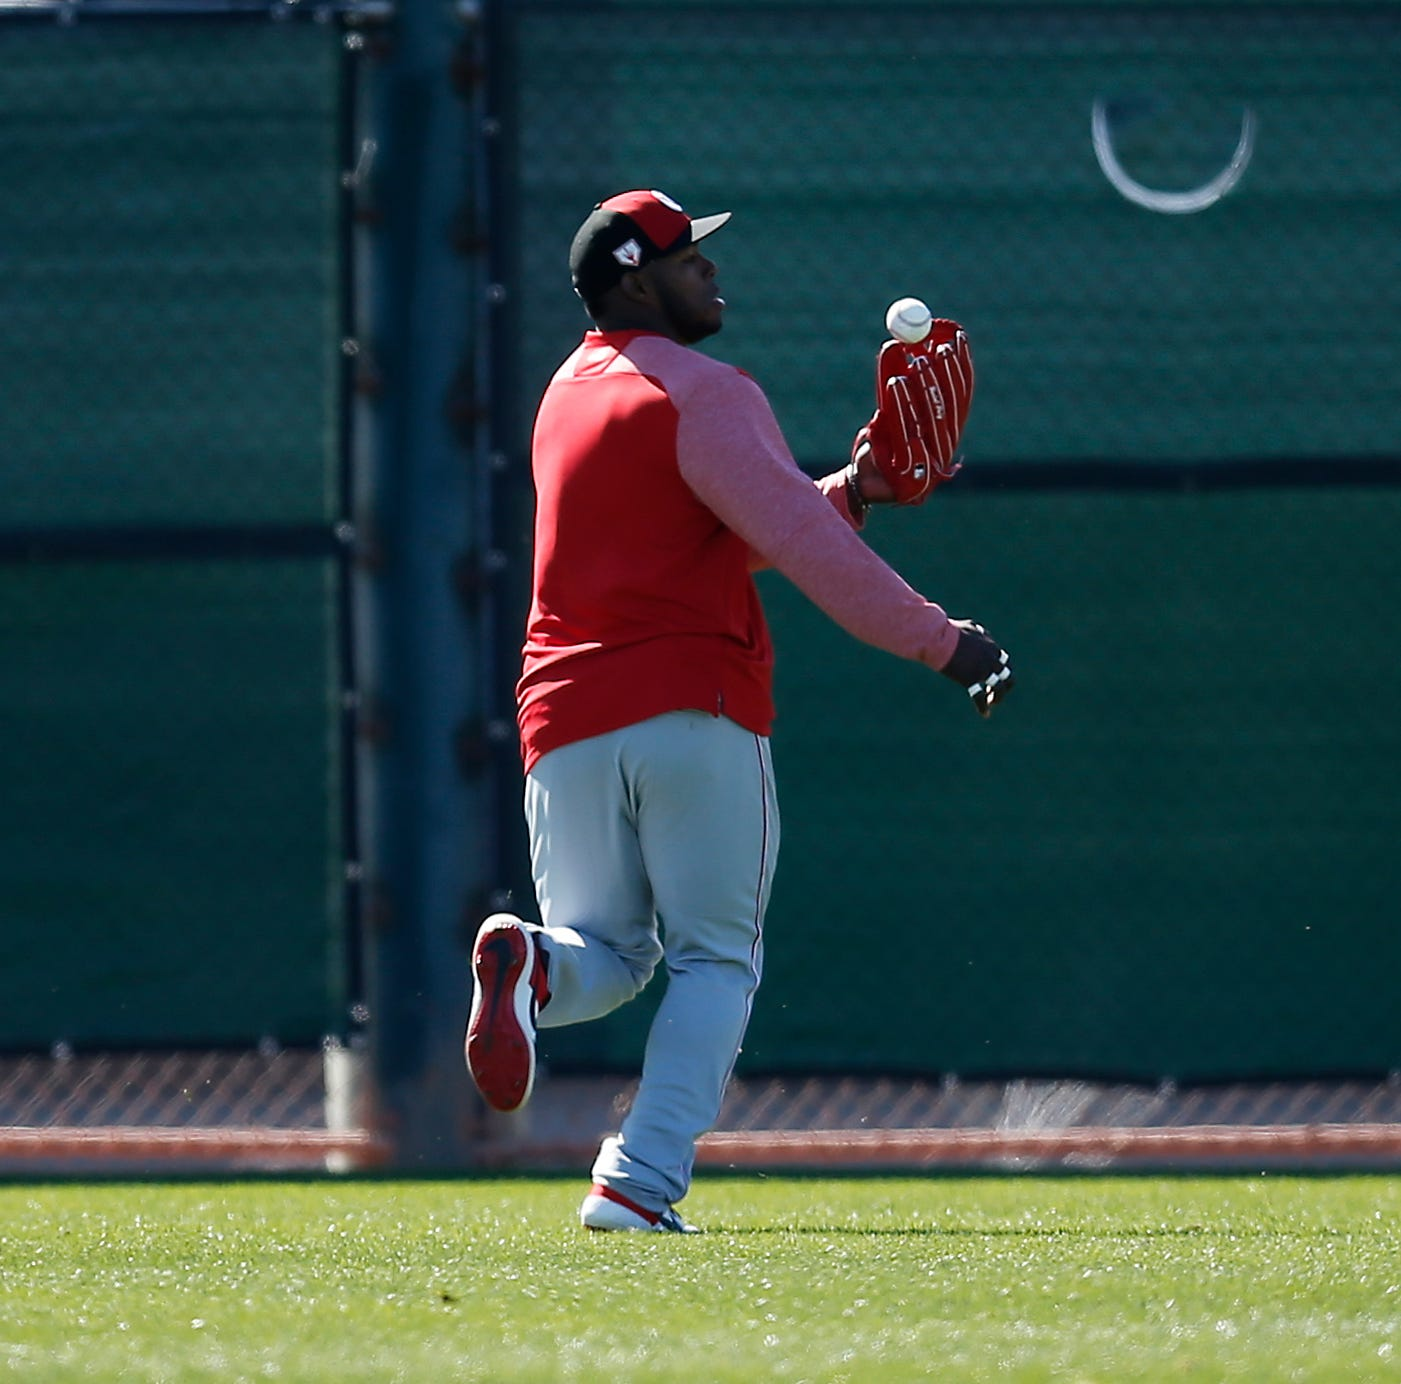 Cincinnati Reds Beat Podcast: Previewing the 2019 season and breaking down the roster